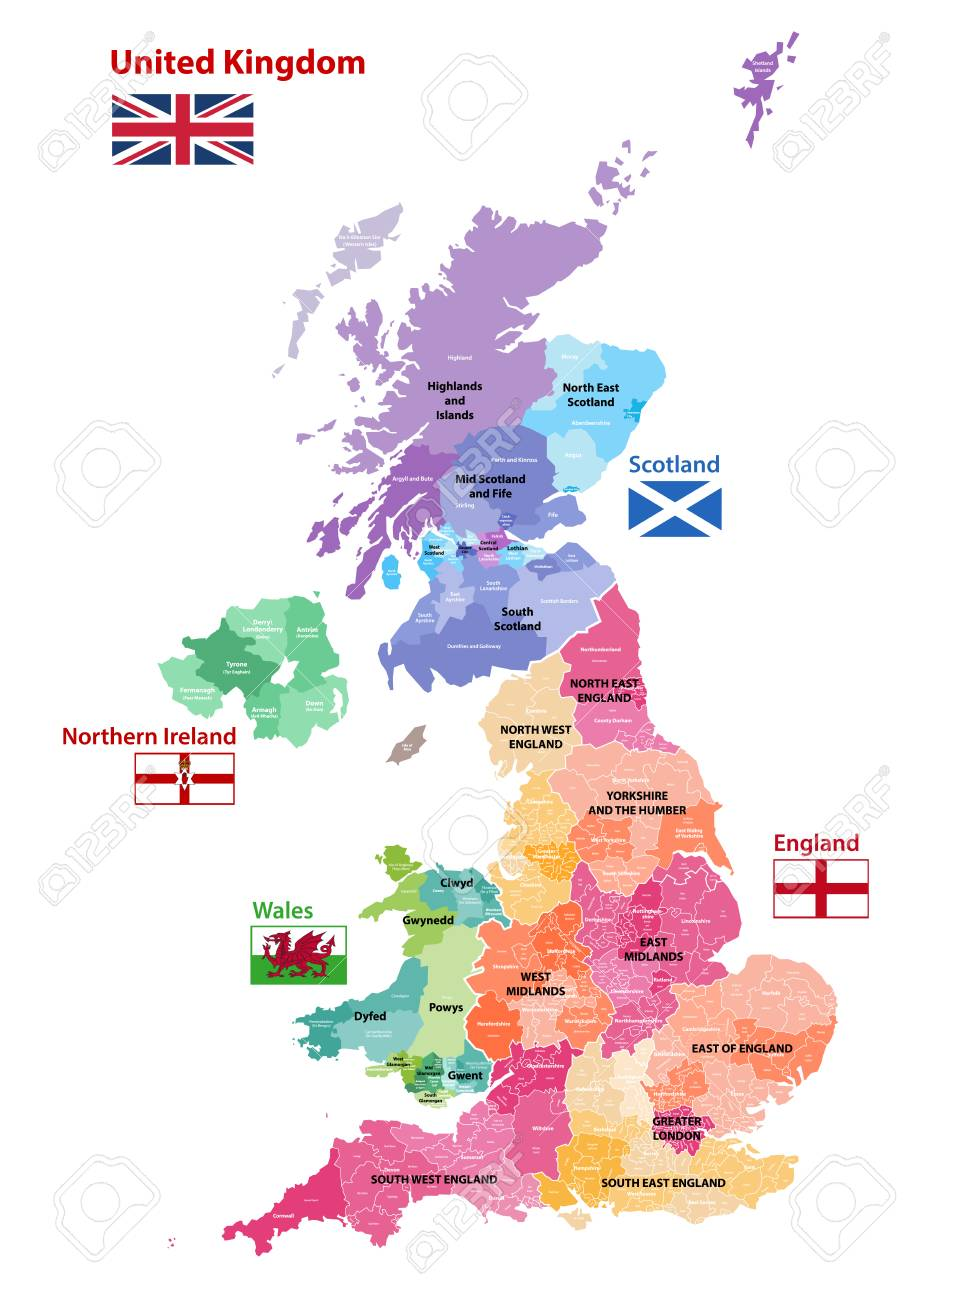 Map Of Uk Showing 4 Countries.Vector Map Of United Kingdom Colored By Countries Counties And